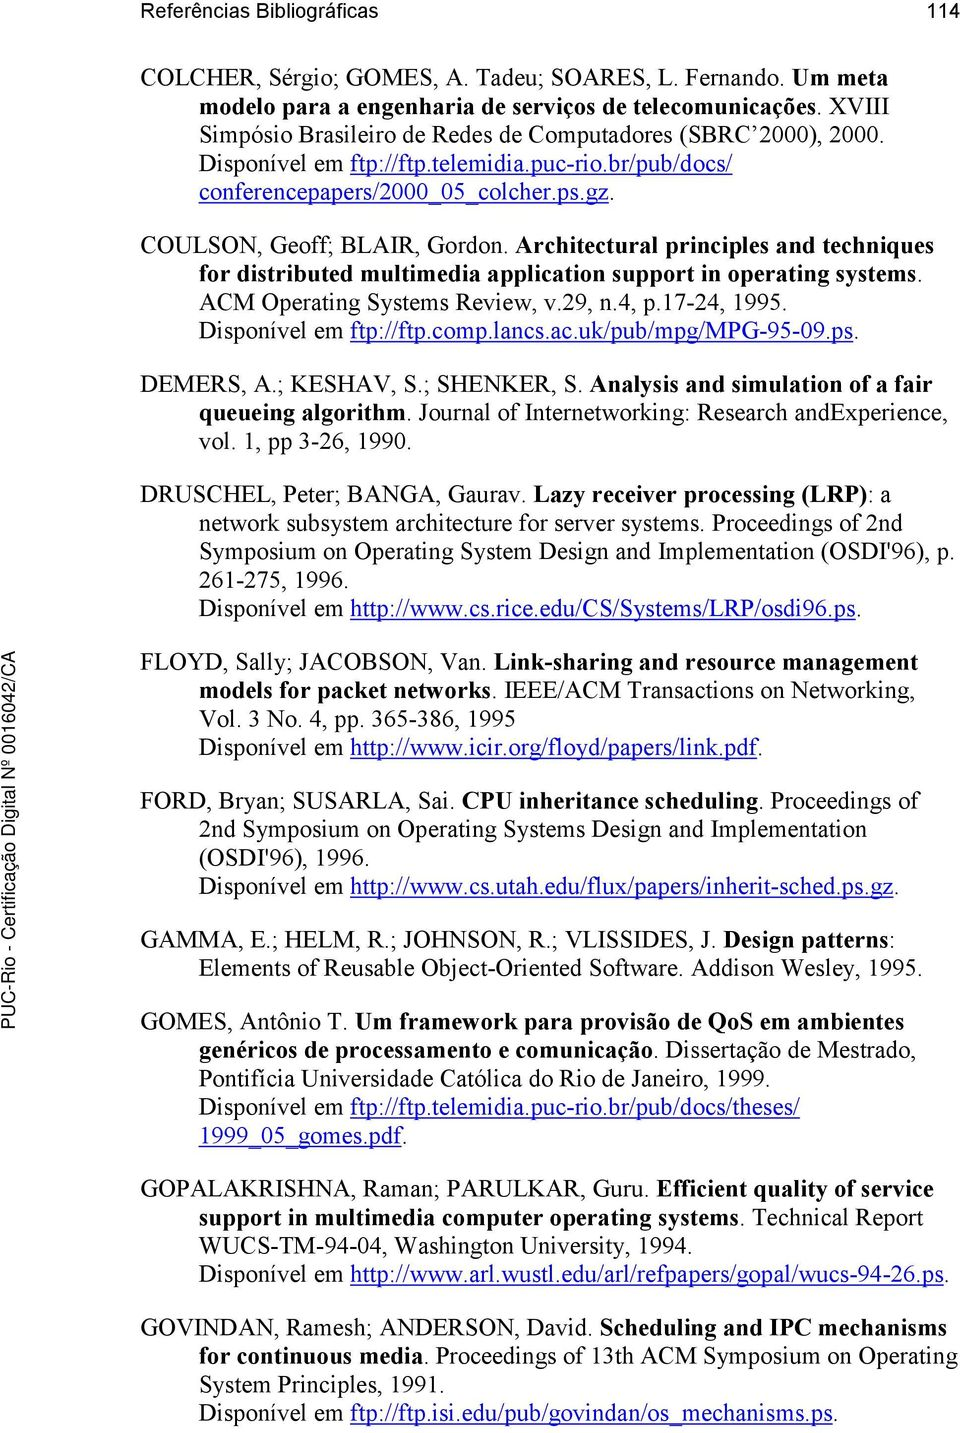 Architectural principles and techniques for distributed multimedia application support in operating systems. ACM Operating Systems Review, v.29, n.4, p.17-24, 1995. Disponível em ftp://ftp.comp.lancs.